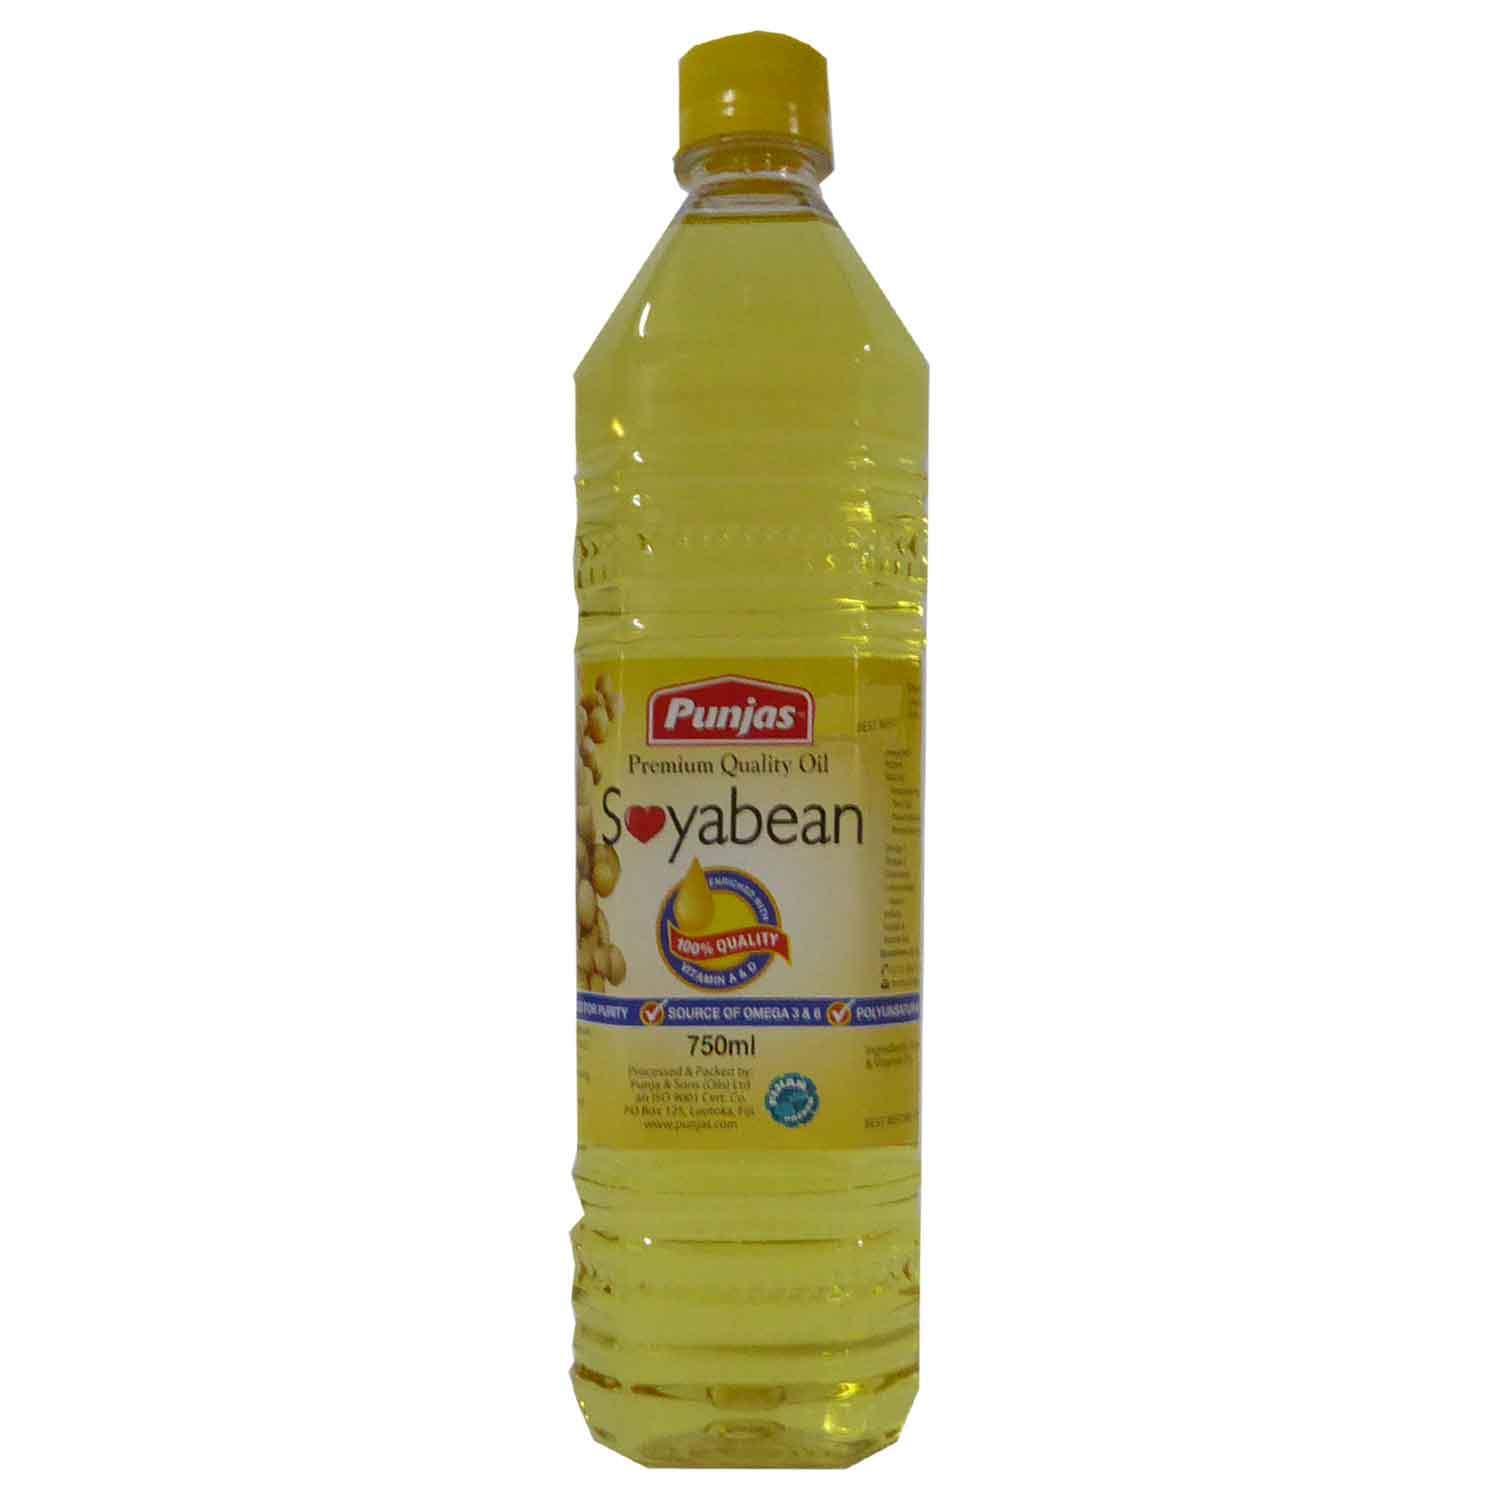 Punjas Soyabean Oil 750ml